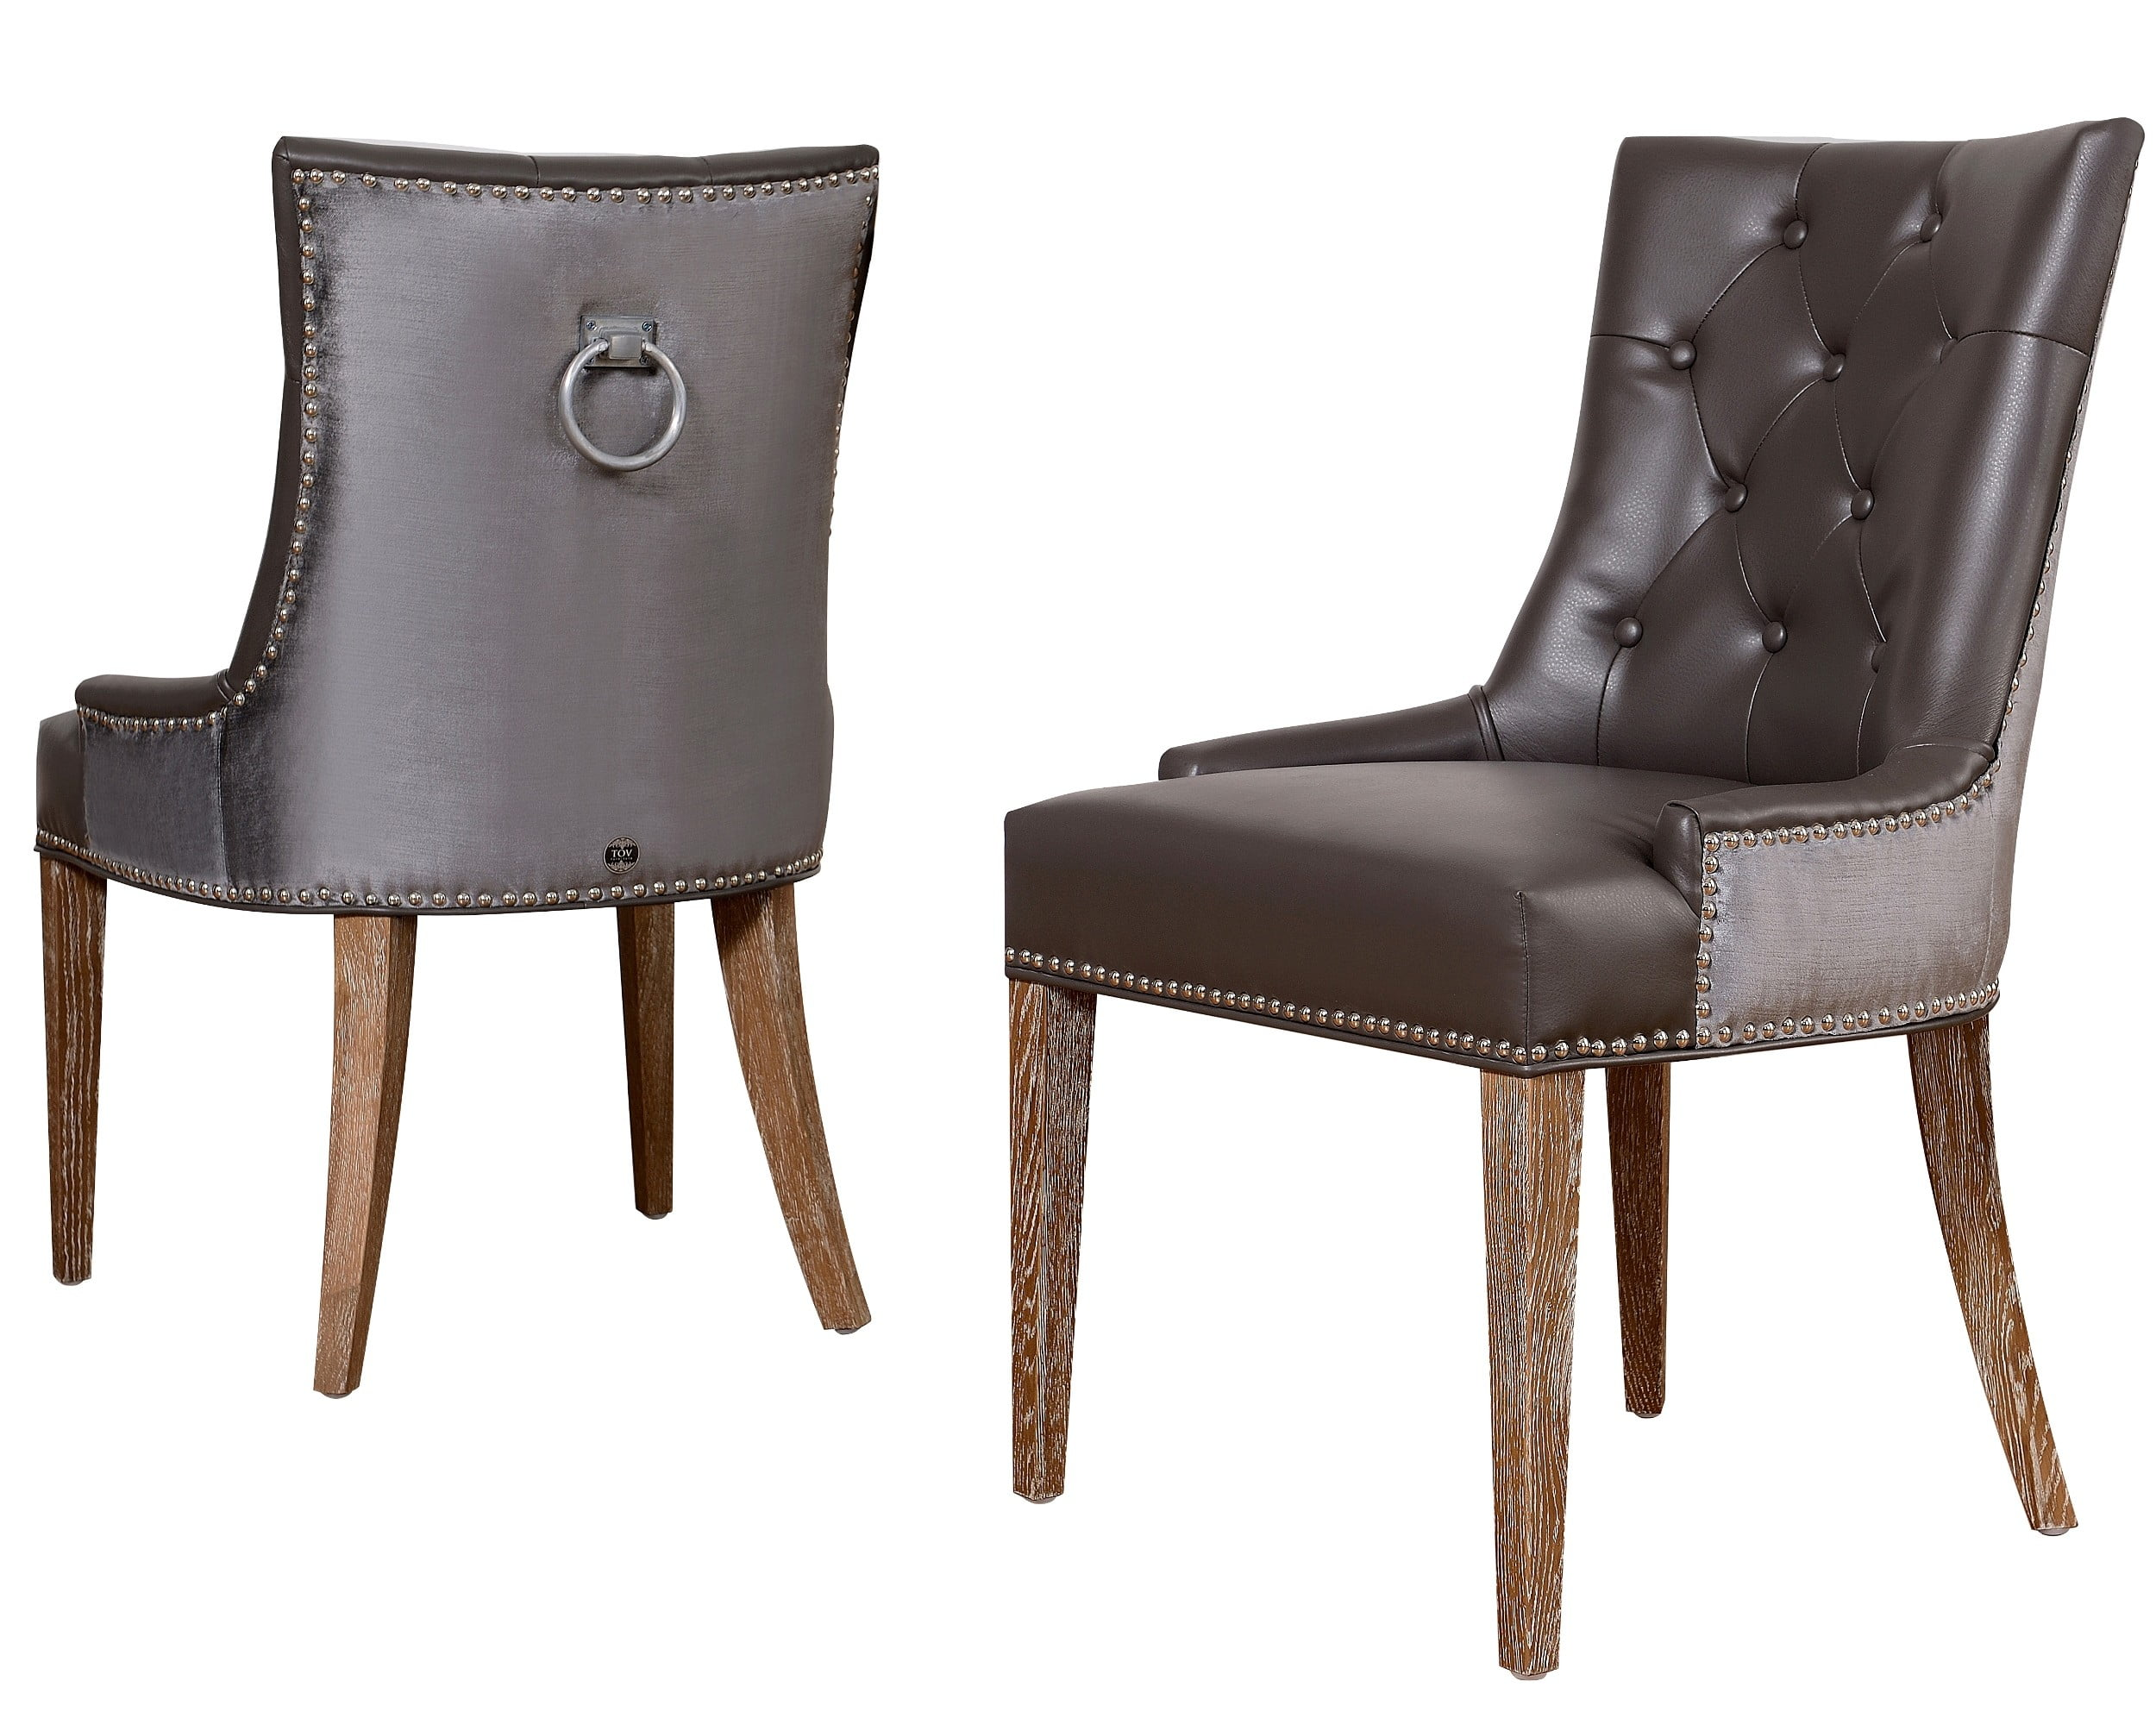 Leather Dining Chairs Uptown Leather Velvet Dining Chair Set Of 2 From Tov Upt